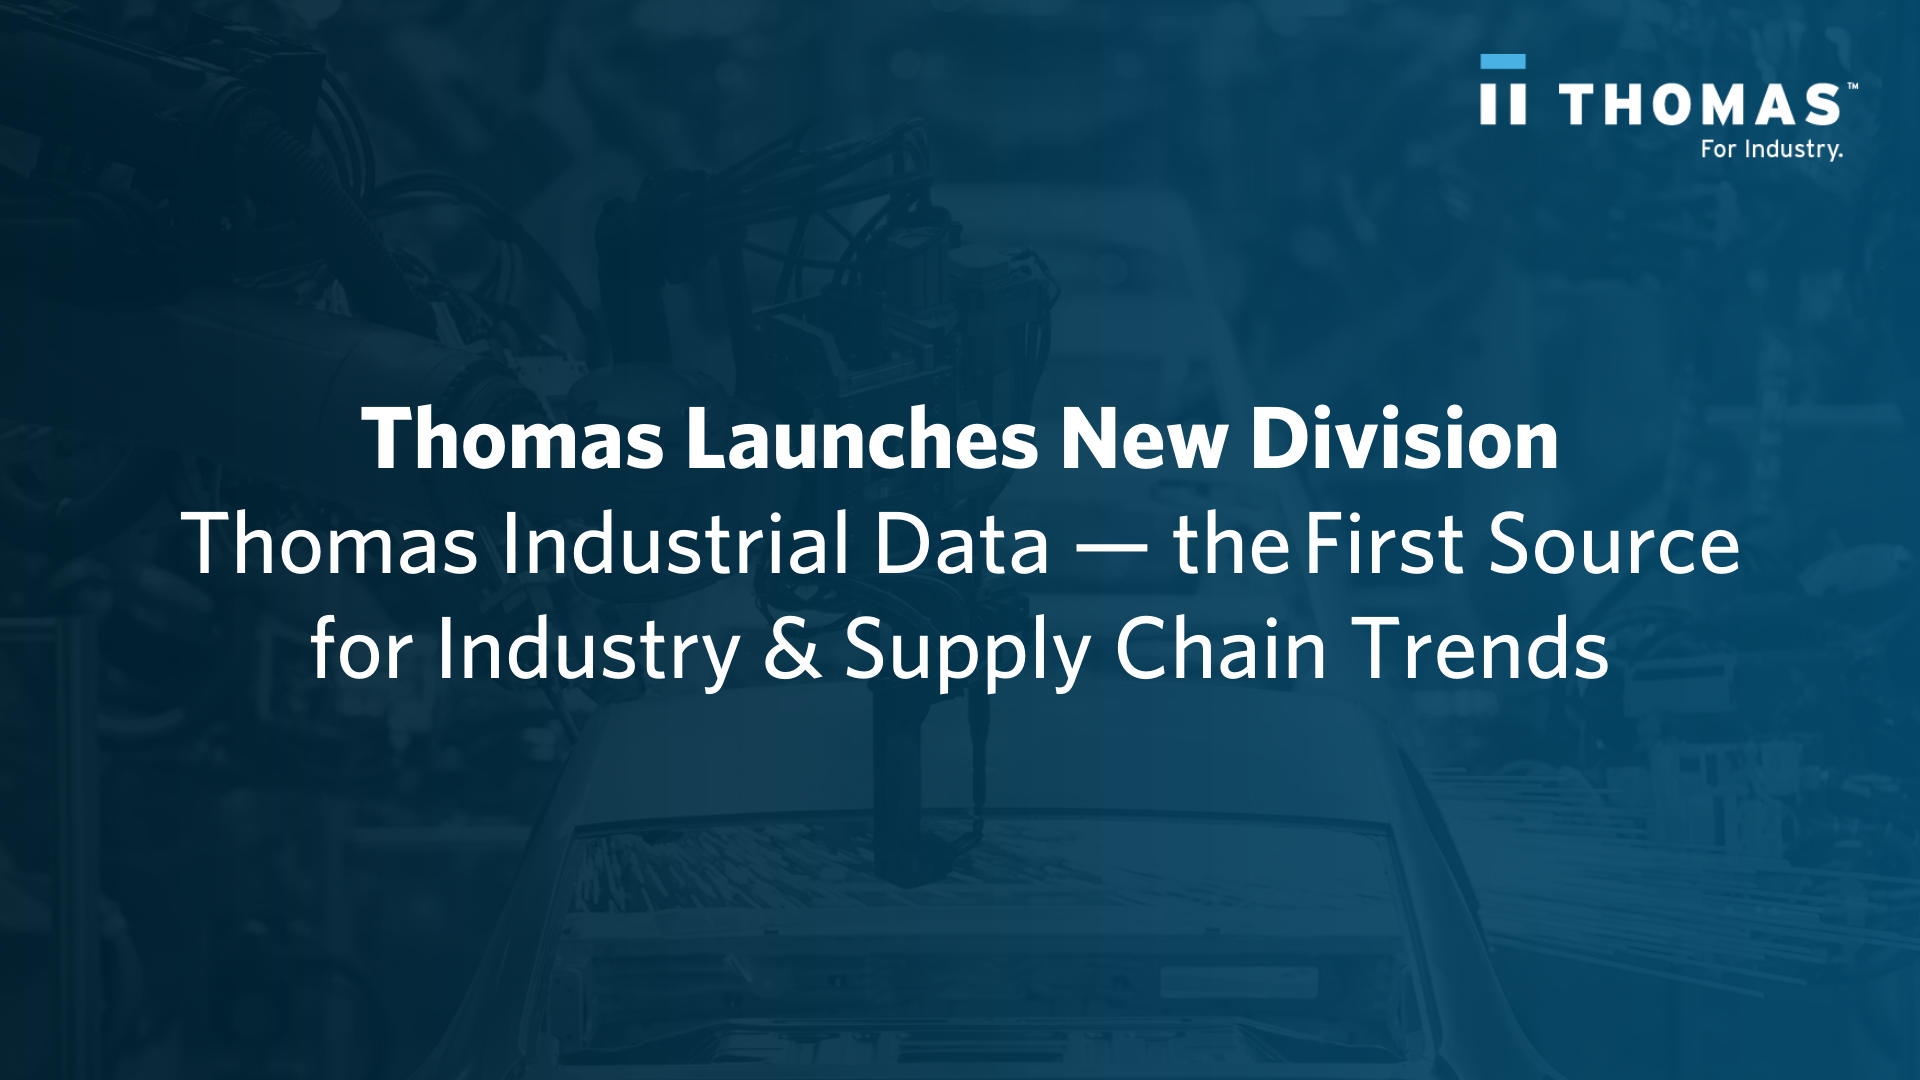 Introducing Thomas Industrial Data